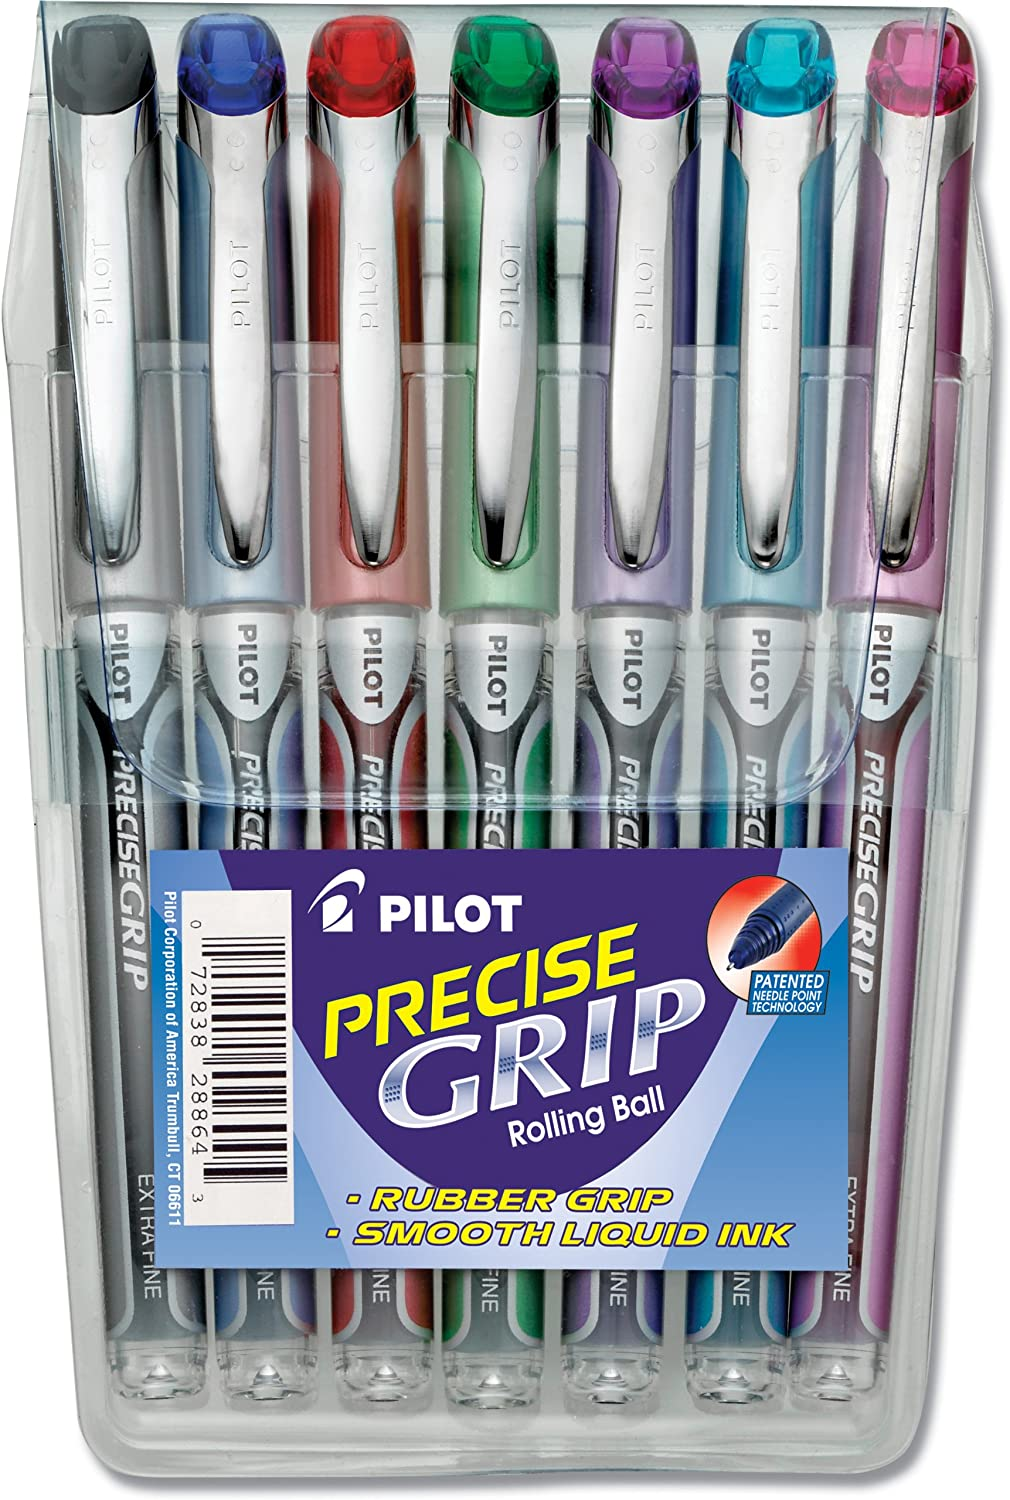 Amazon.com: Pilot Precise Grip Liquid Ink Rolling Ball Pens, Extra Fine  Point, 7-Pack Pouch, Black/Blue/Red/Green/Purple/Turquoise/Pink Inks  (28864): Office ...